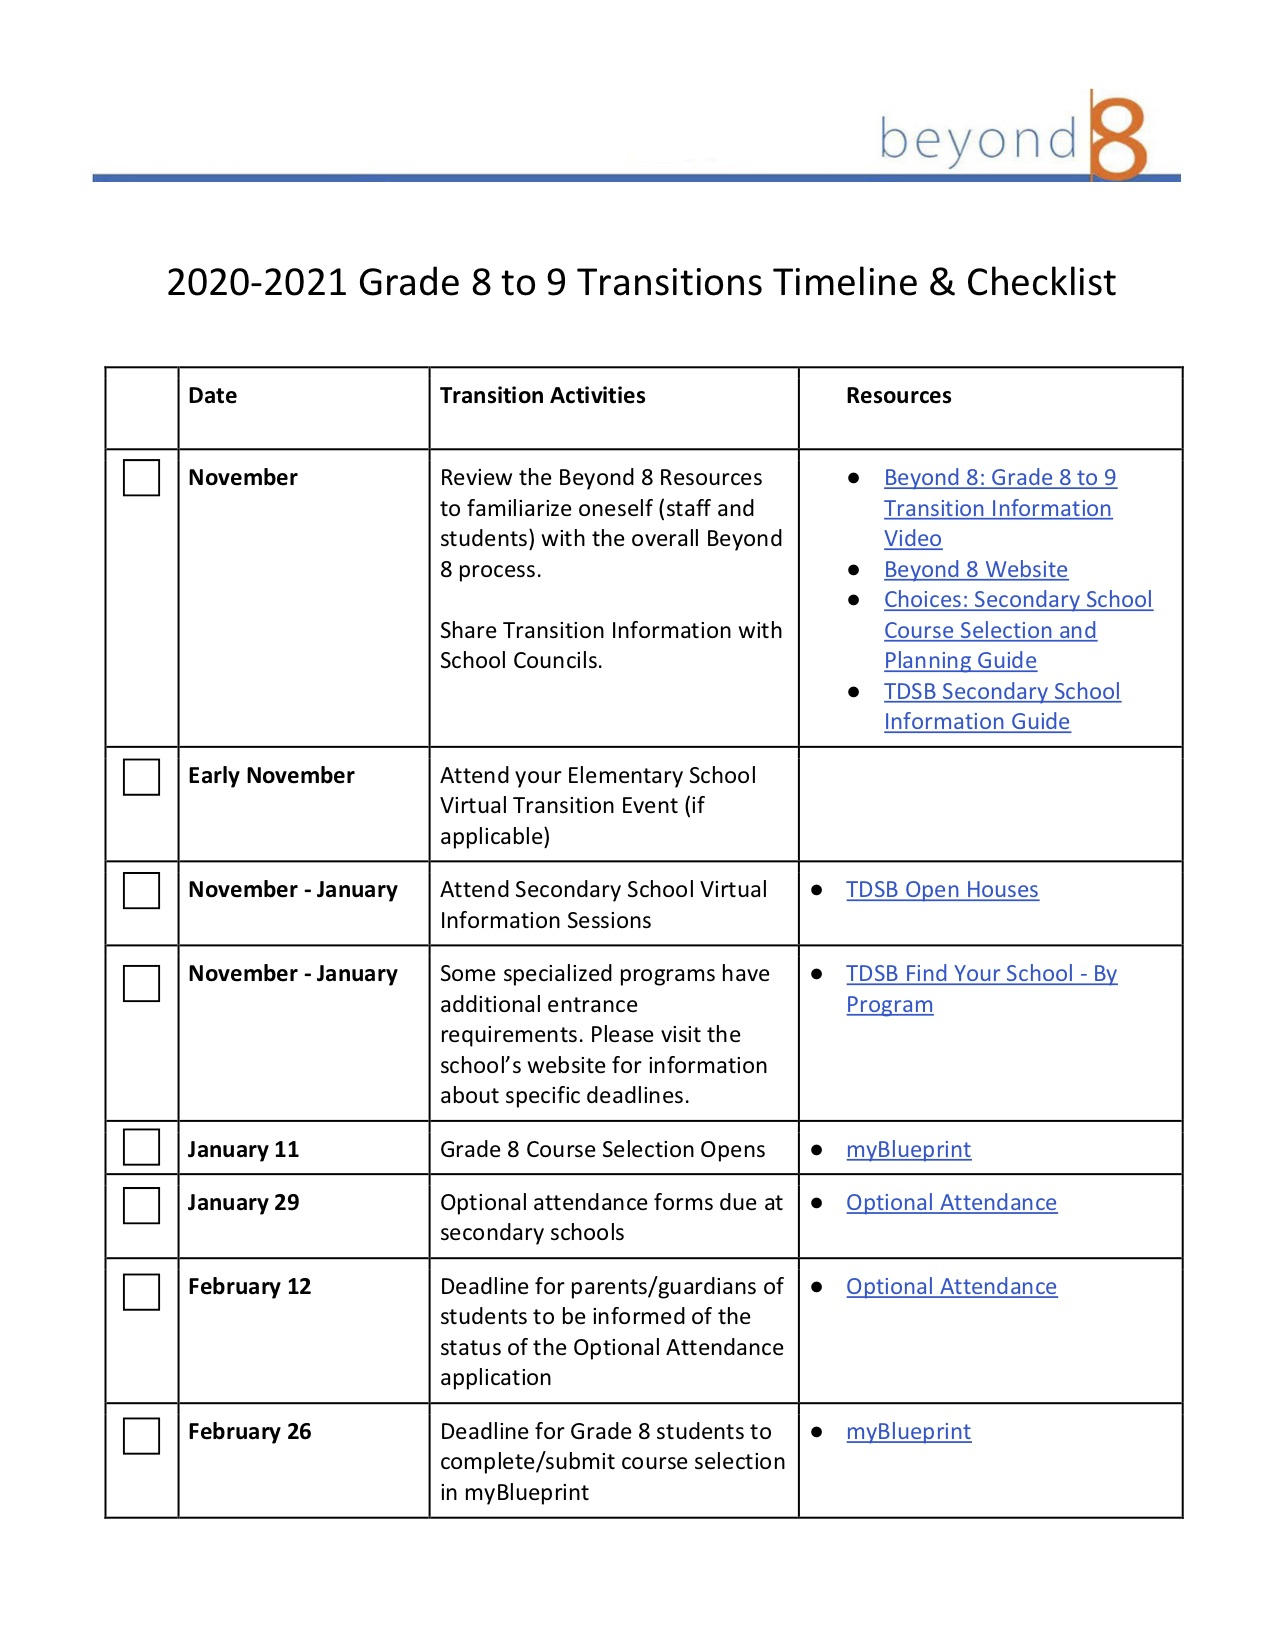 Grade 8 to 9 Transitions Timeline and Checklist